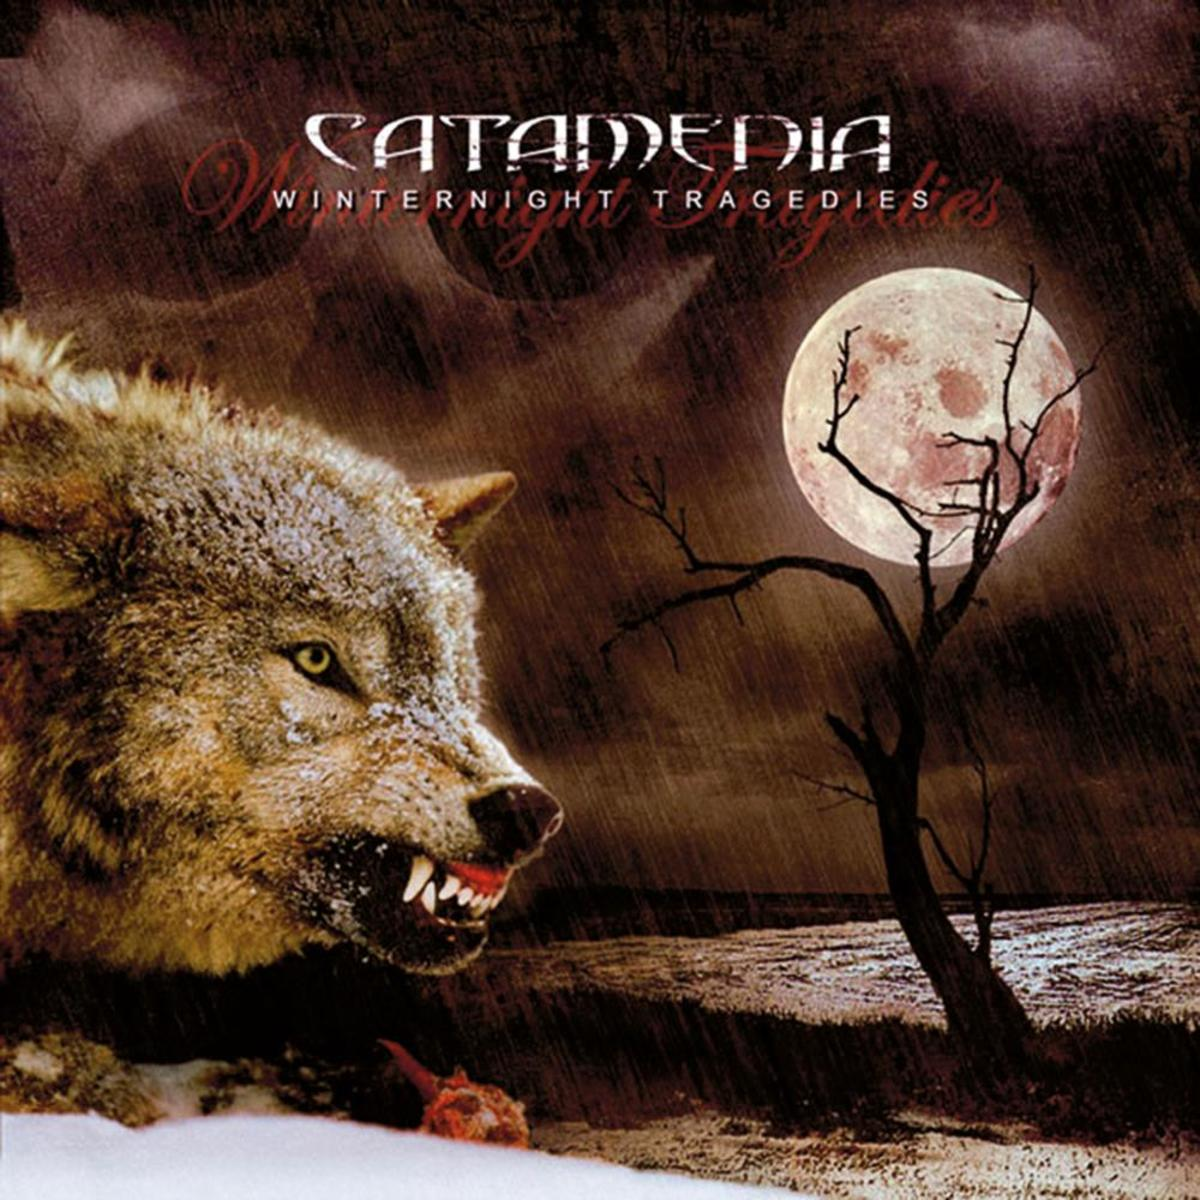 a-review-of-the-album-winternight-tragedies-the-excellent-melodic-black-metal-album-by-catamenia